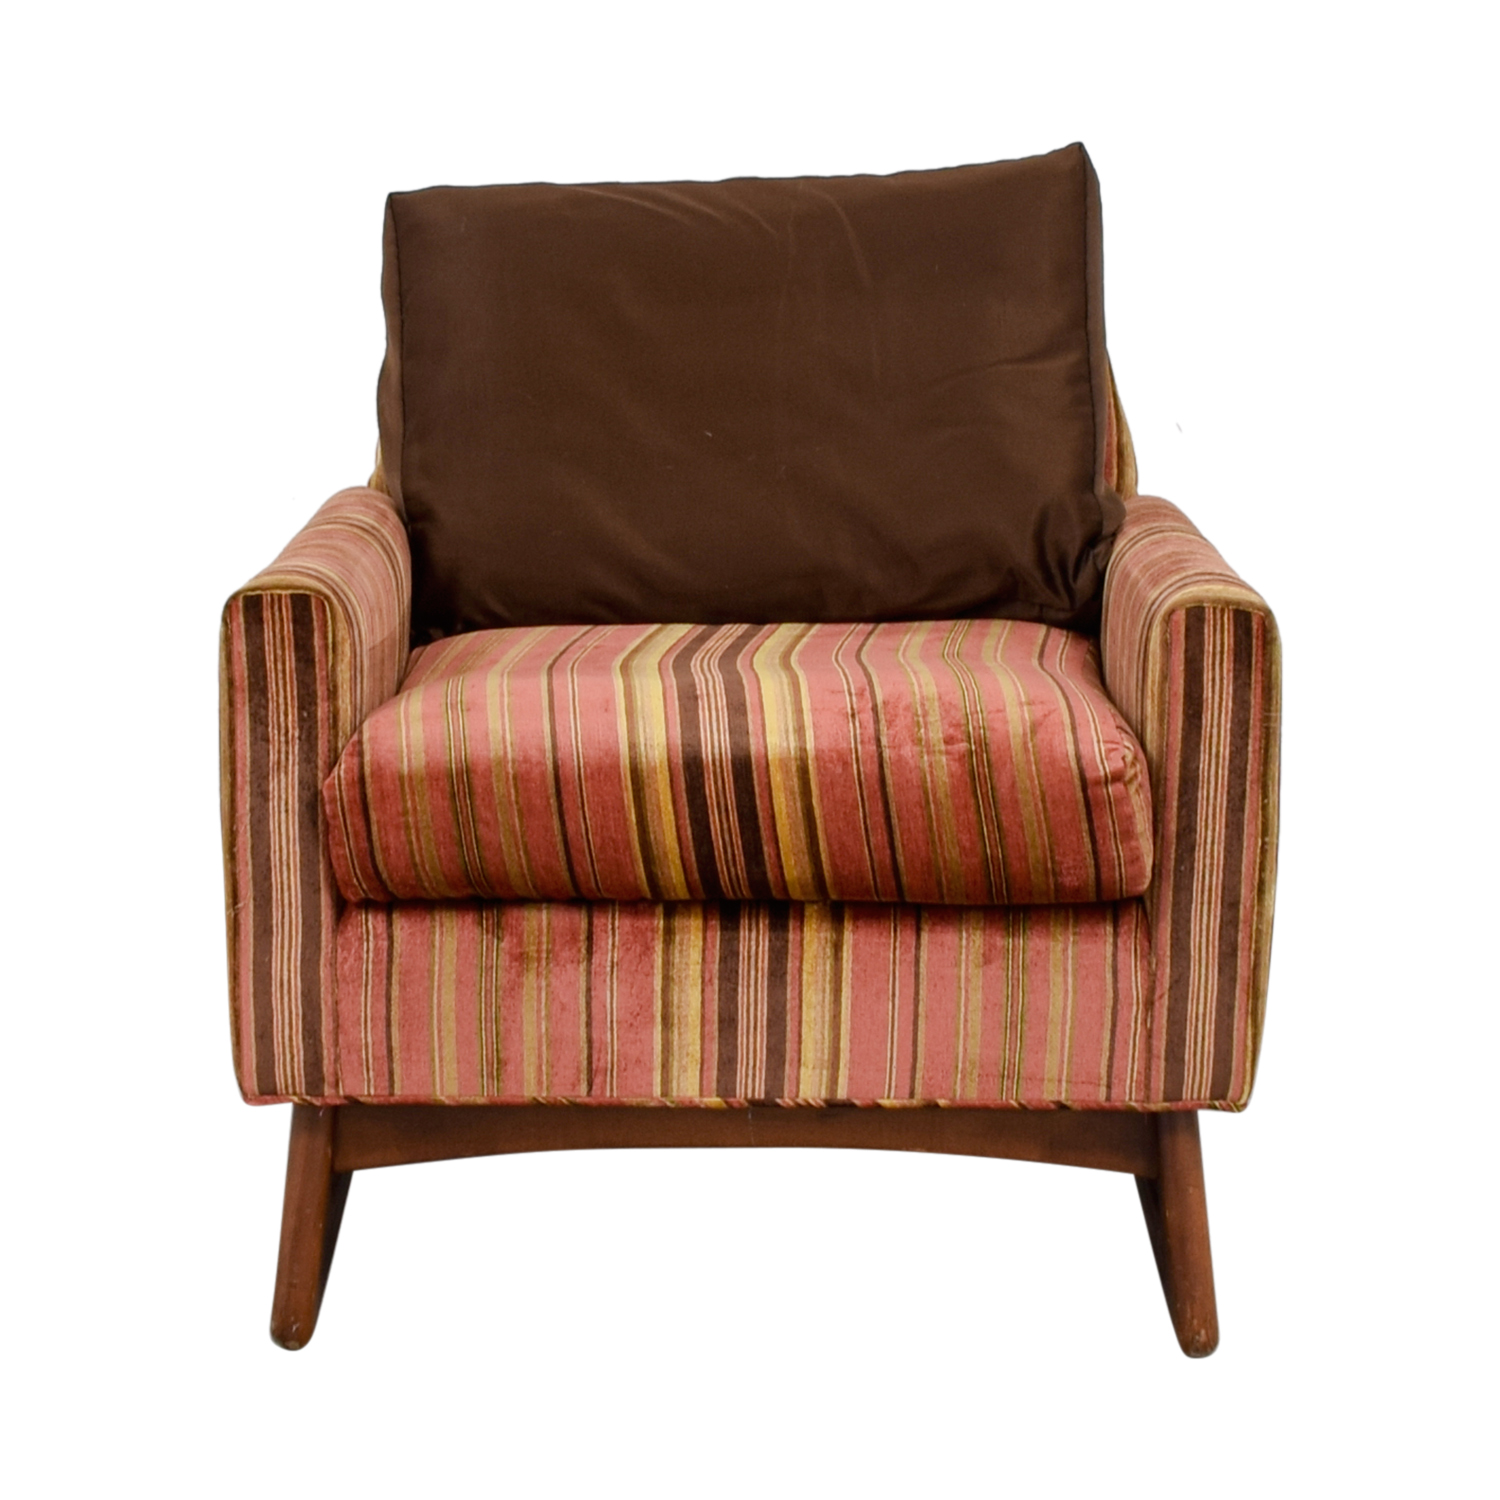 Pleasing 89 Off Adrian Pearsall Adrian Pearsall Red And Yellow Striped Accent Chair Chairs Short Links Chair Design For Home Short Linksinfo